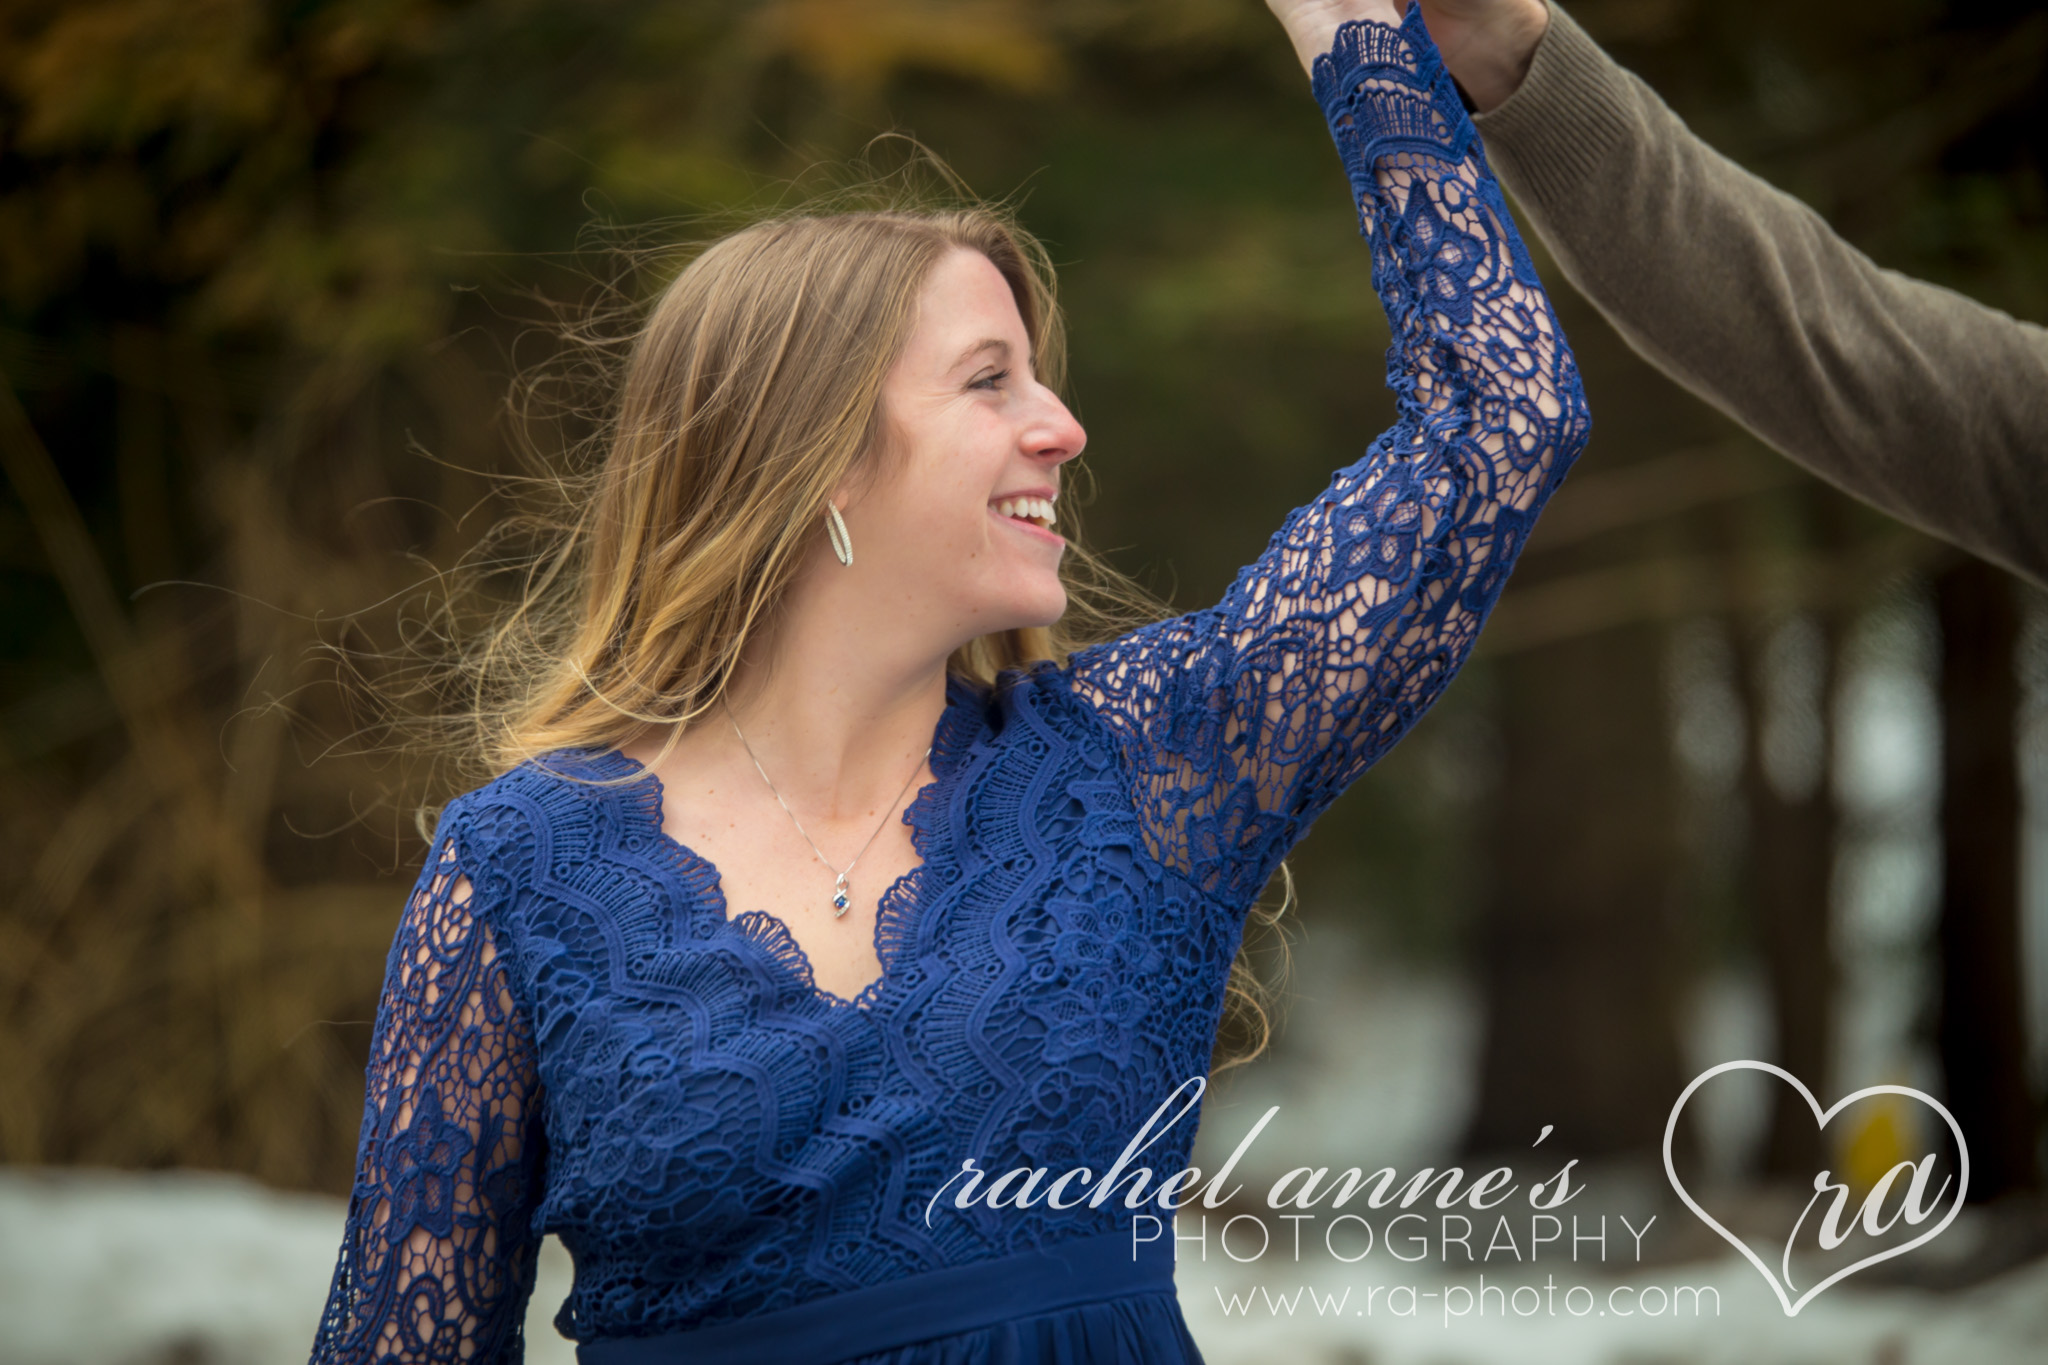 059-JKM-DUBOIS-PA-ENGAGEMENT-PHOTOGRAPHY.jpg